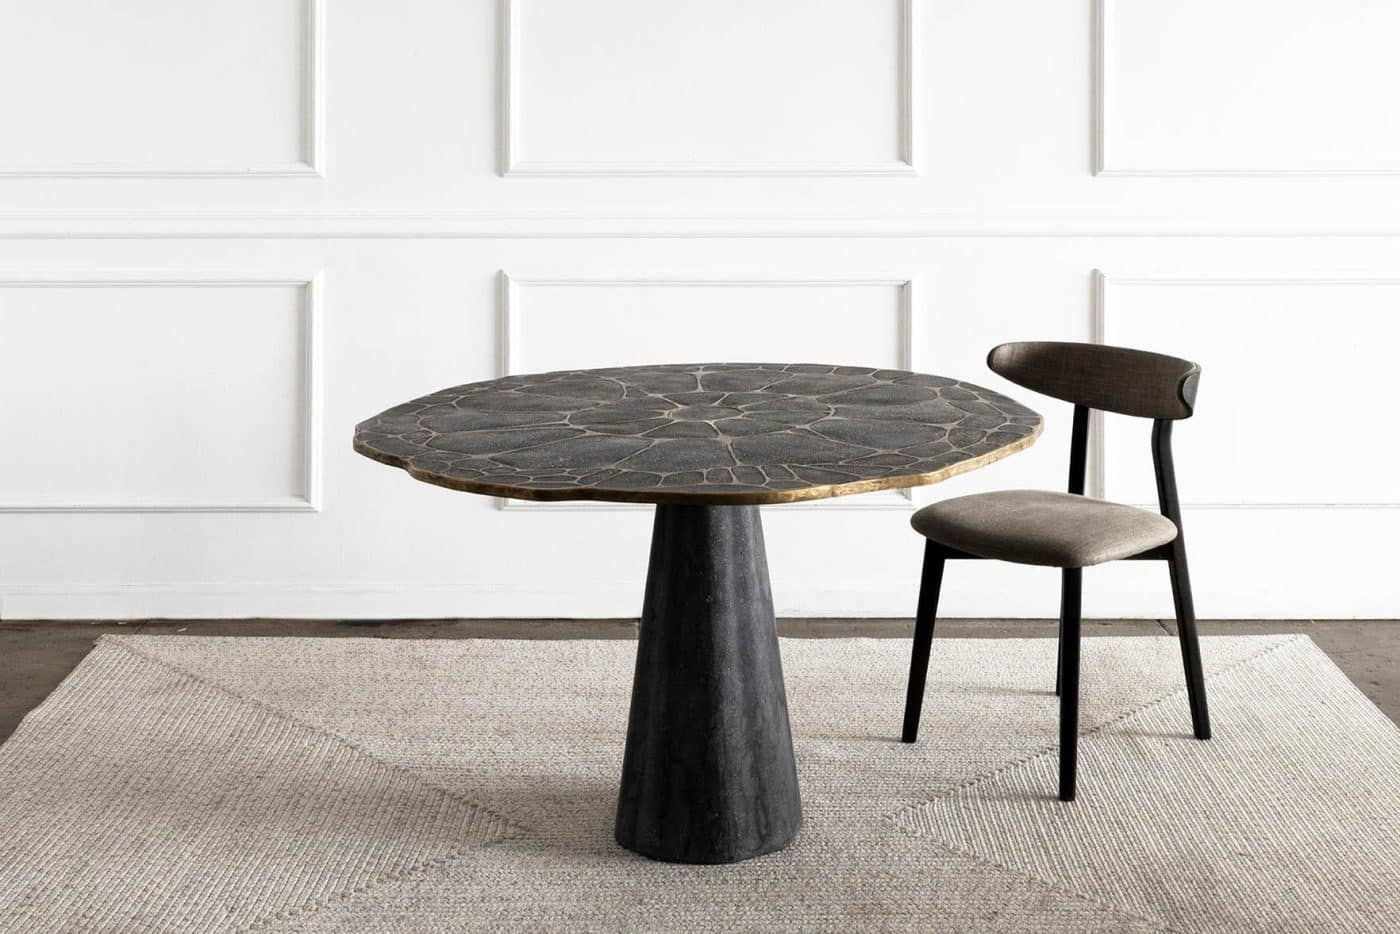 James De Wulf's bronze and concrete Exo dining table.